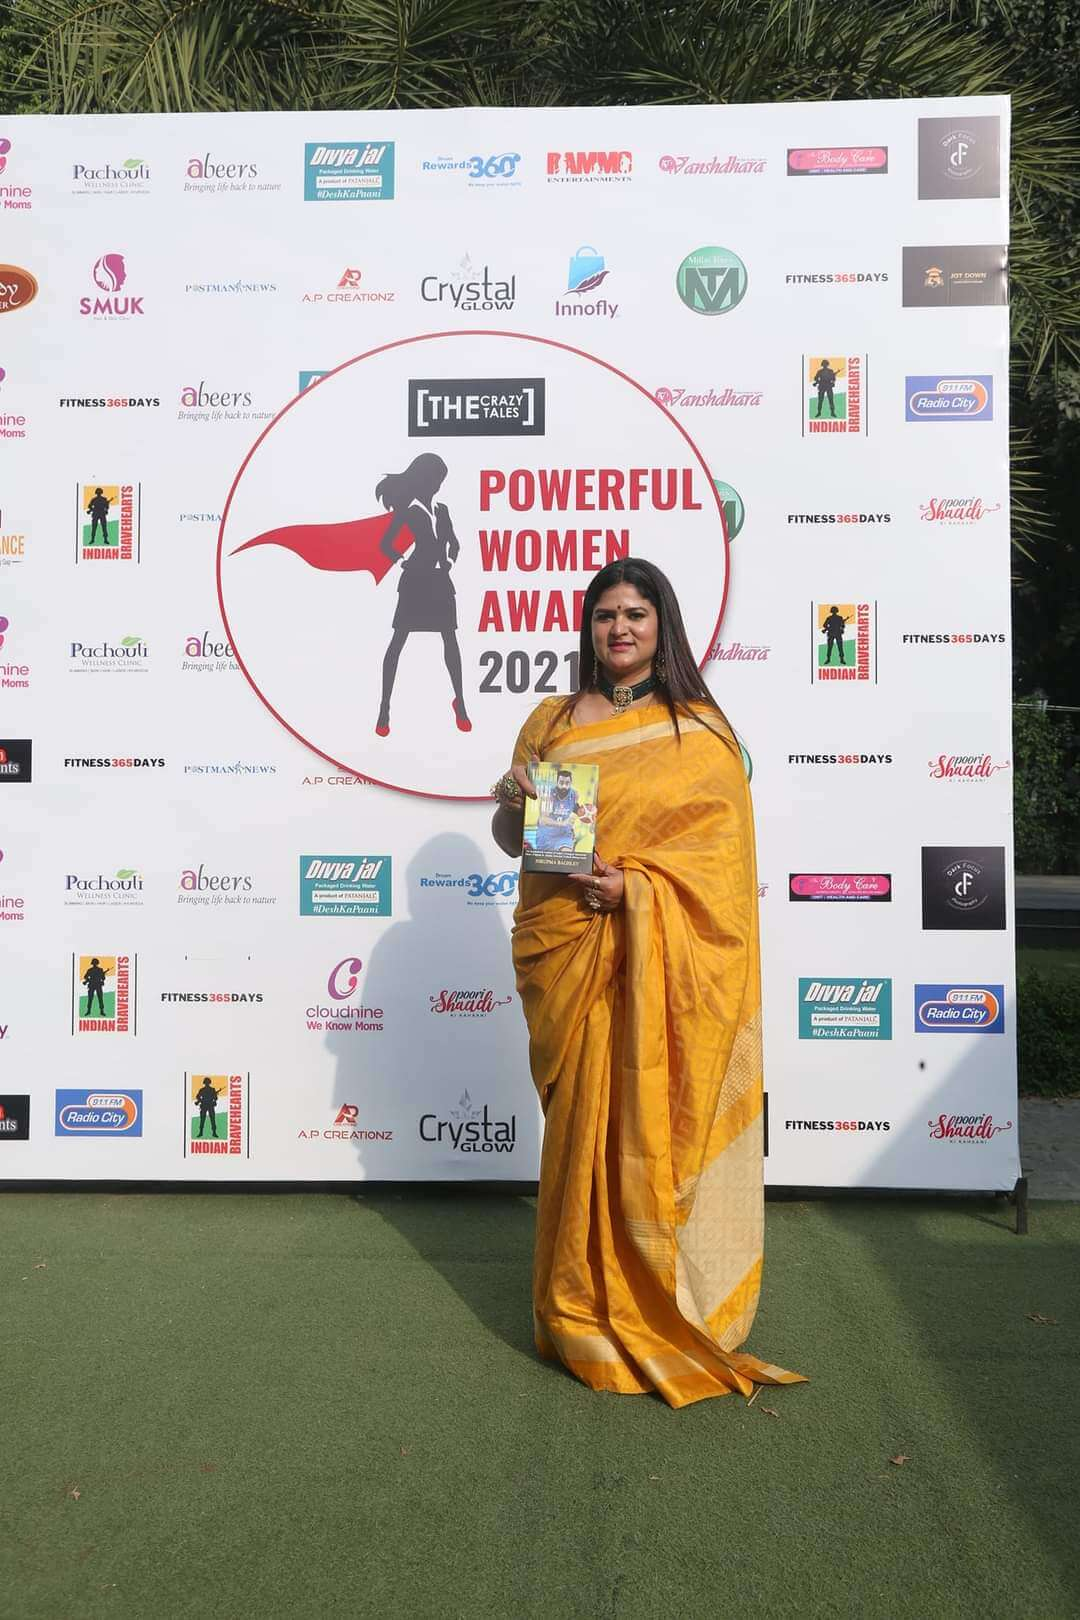 Powerful Women Awards 2021 - The Crazy Tales